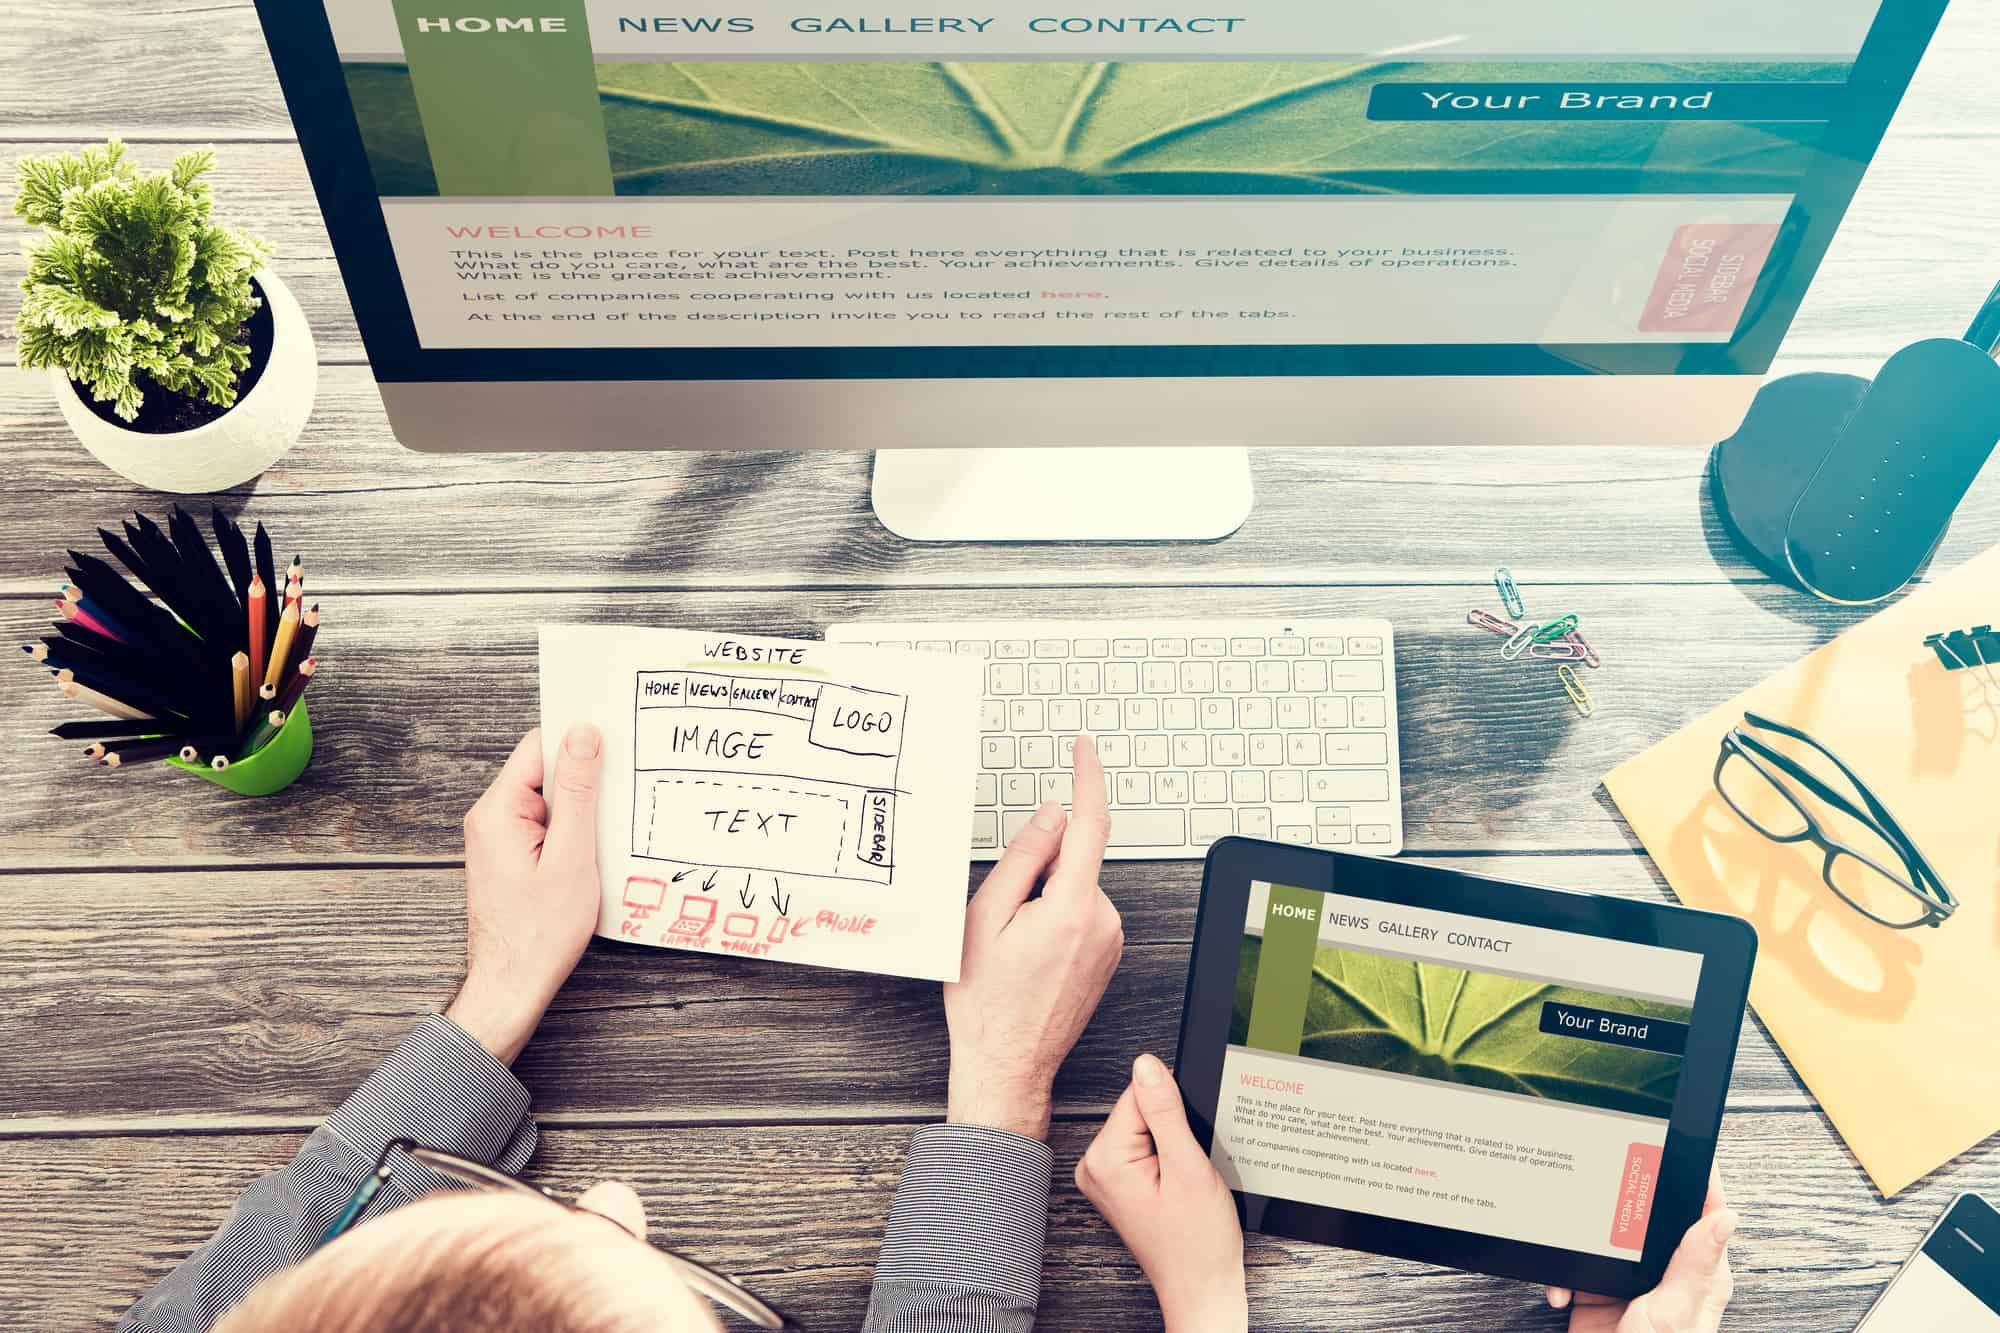 The Importance of Website Design: 7 Vital Ways Your Site Design Impacts Your Bottom Line